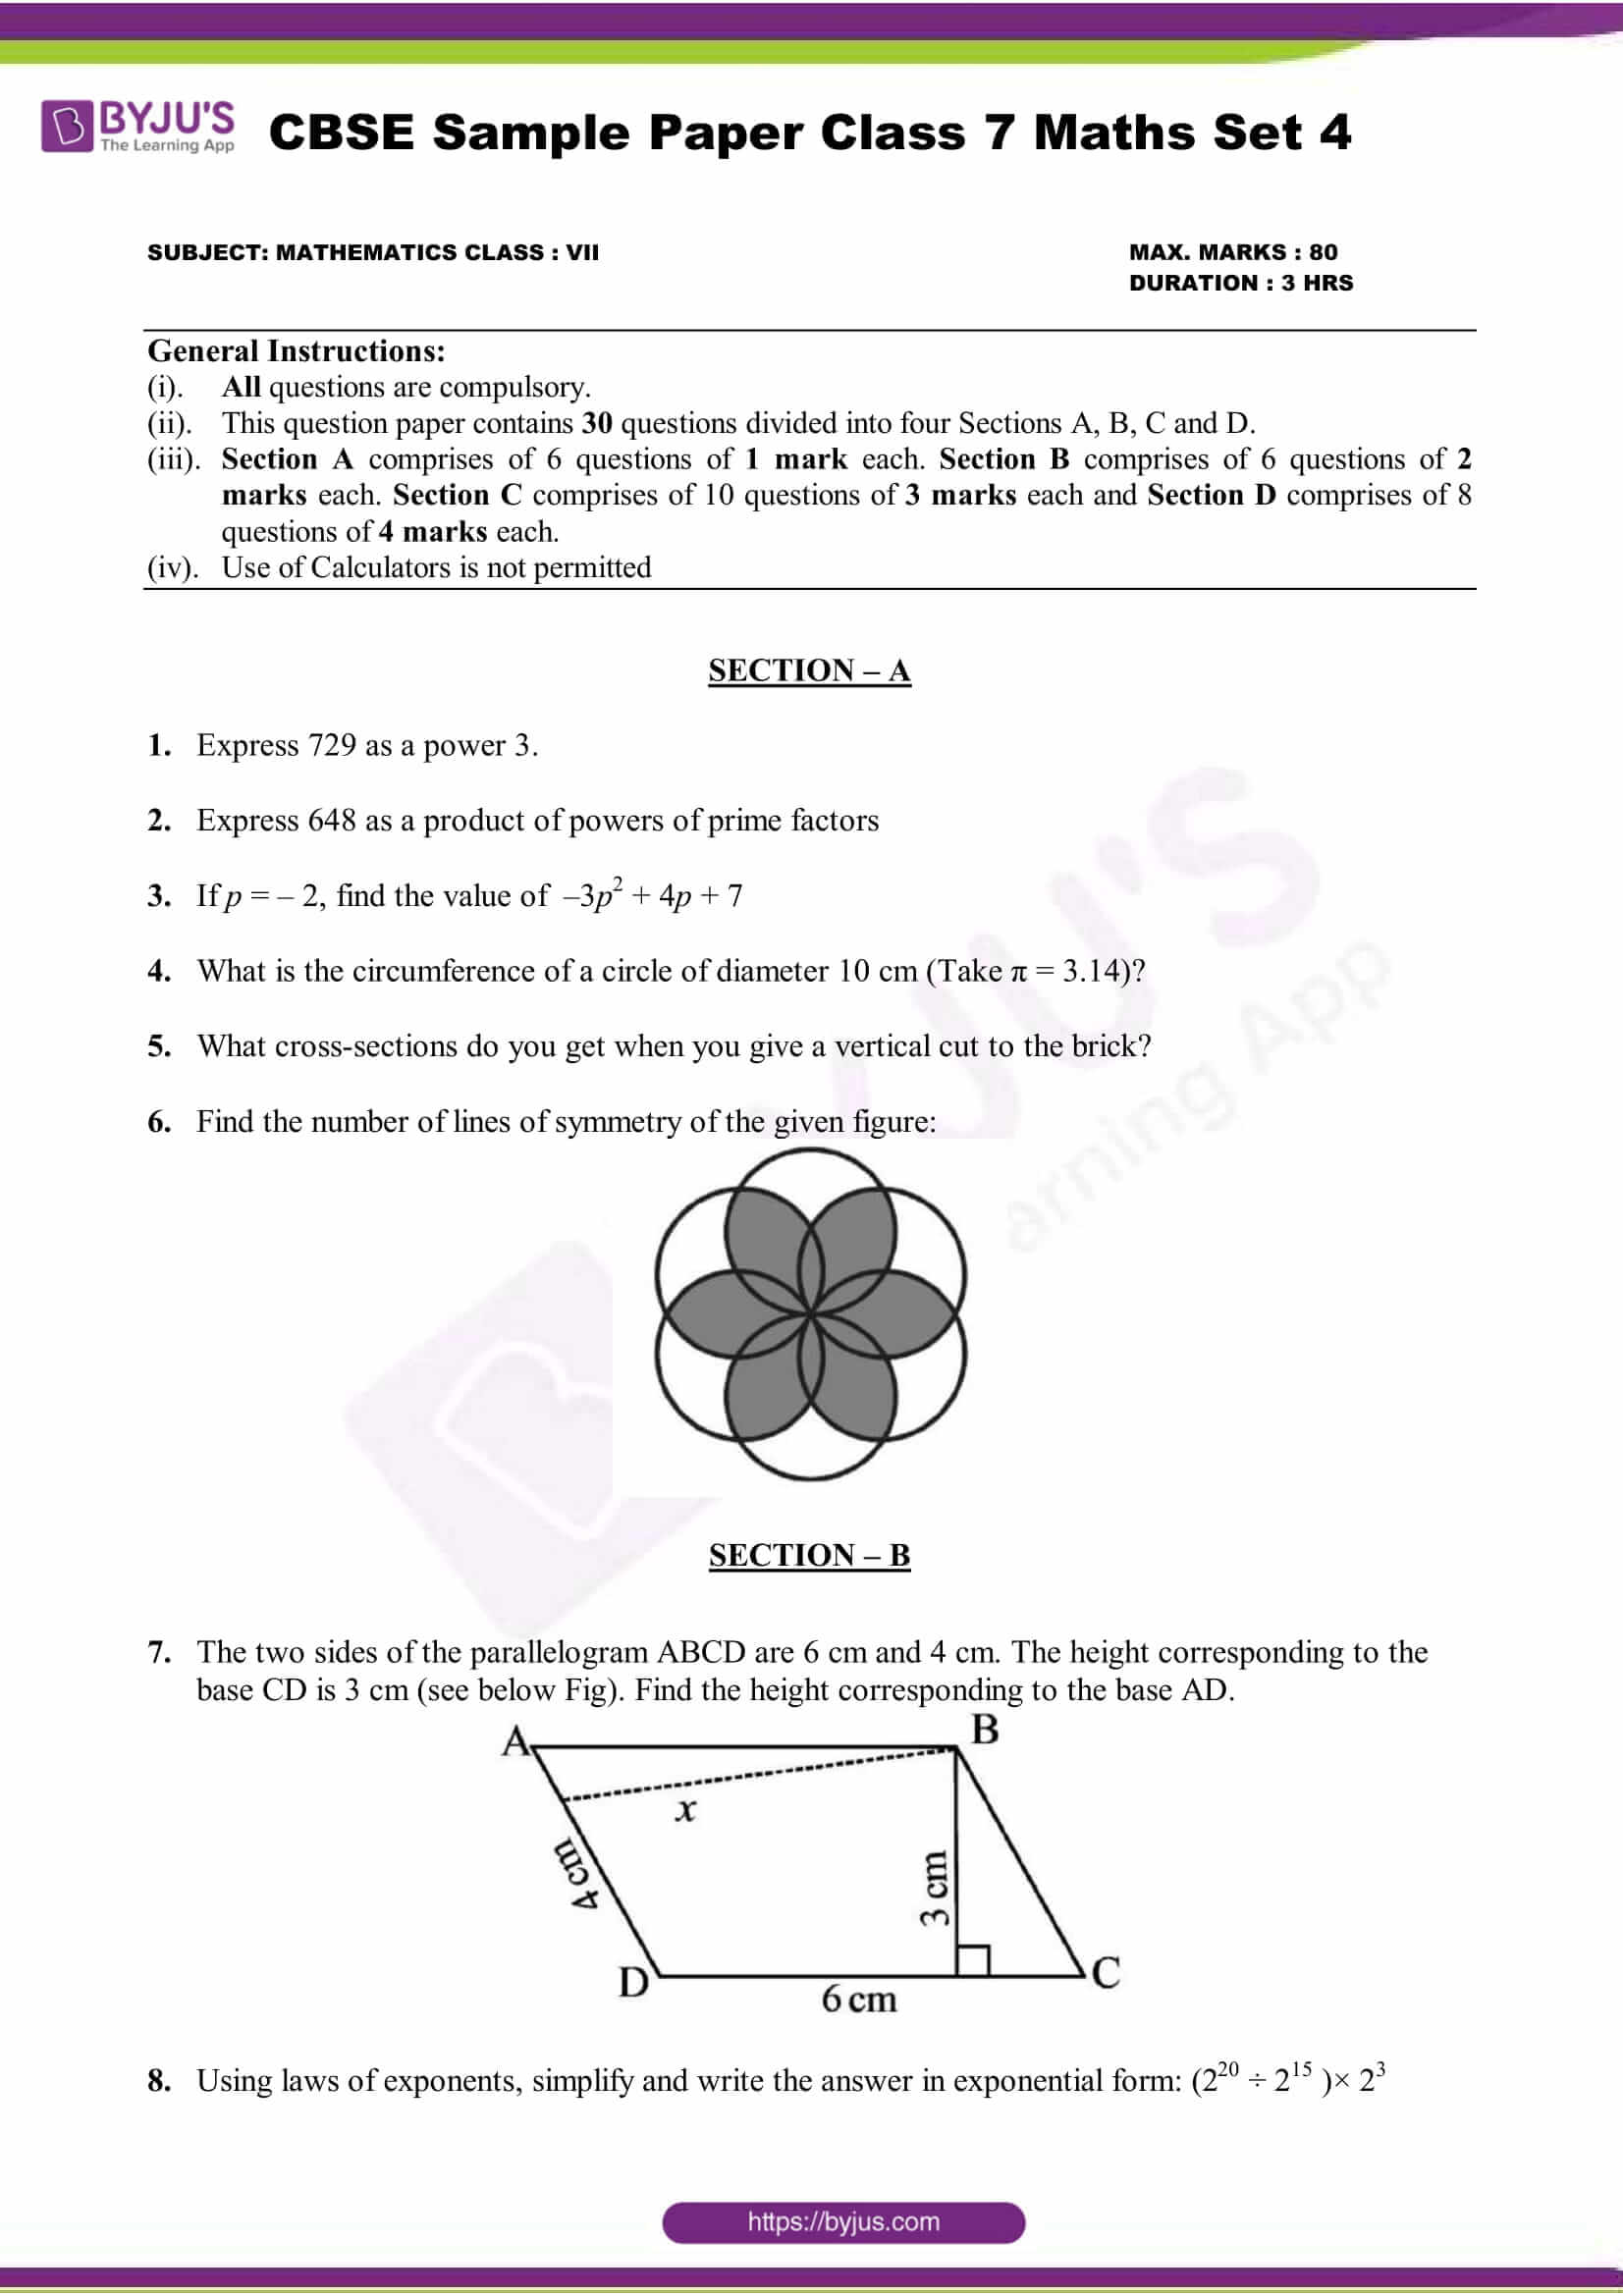 cbse sample paper class 7 maths set 4